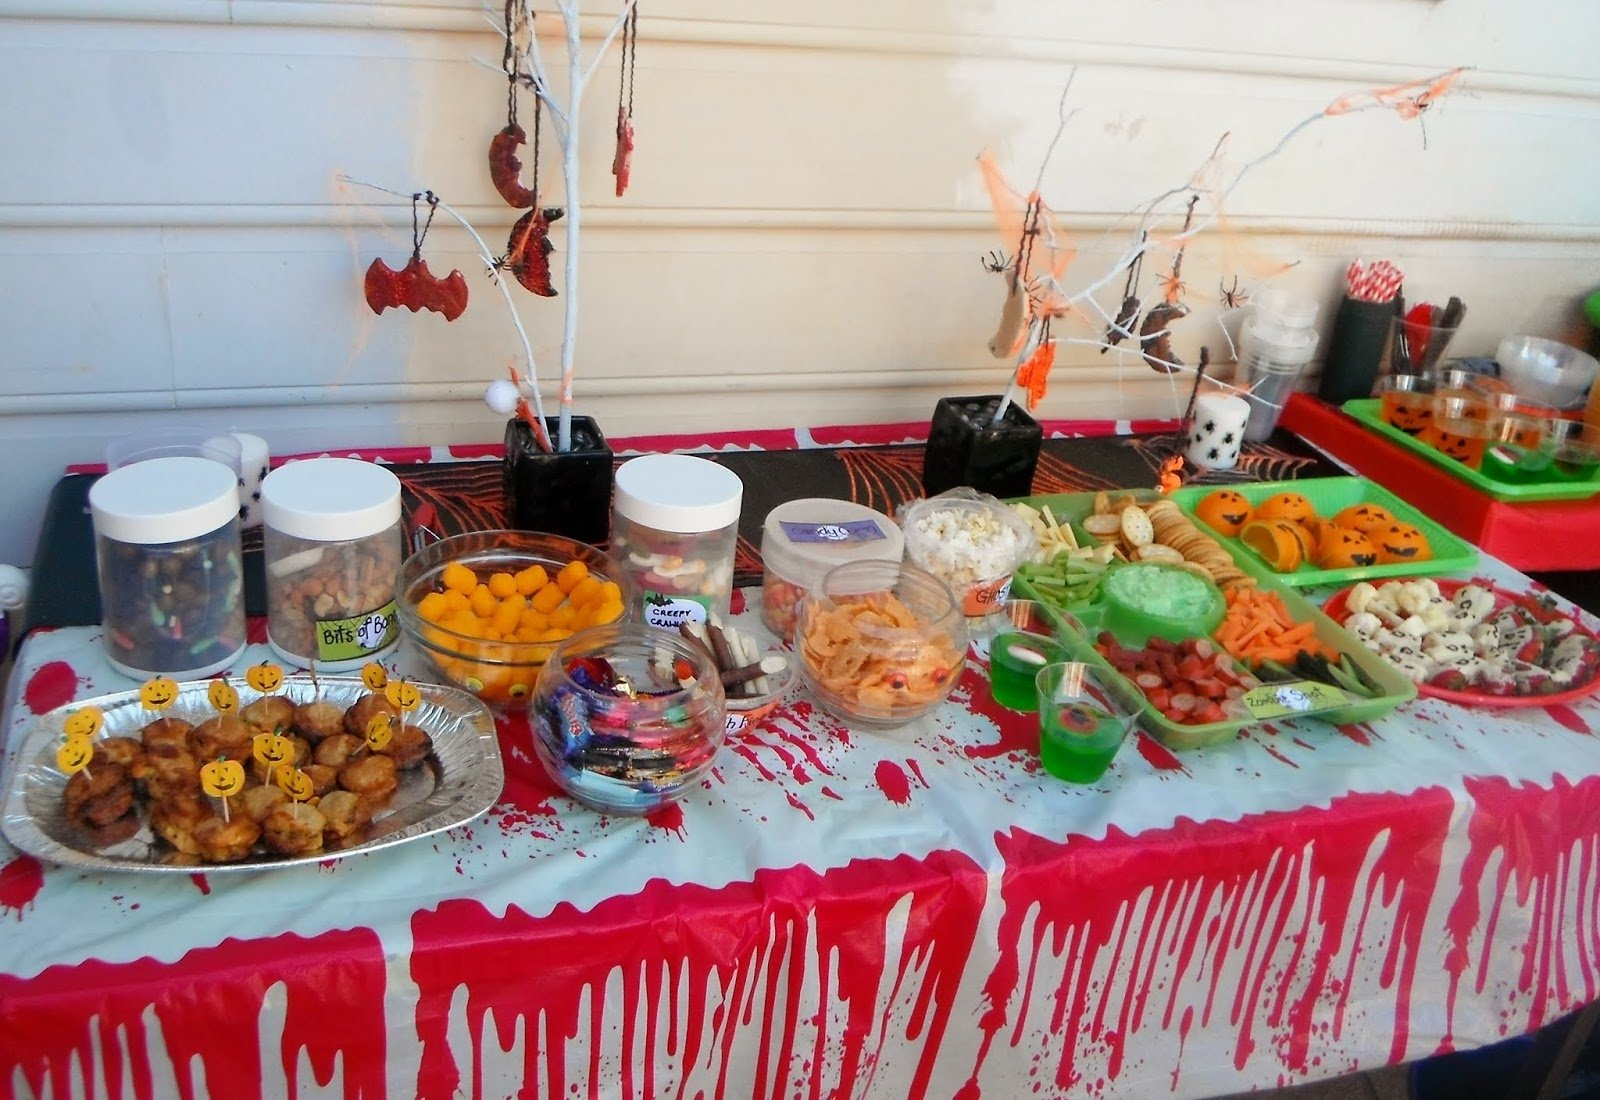 10 Fabulous Party Ideas For Adults At Home adventures at home with mum halloween party food